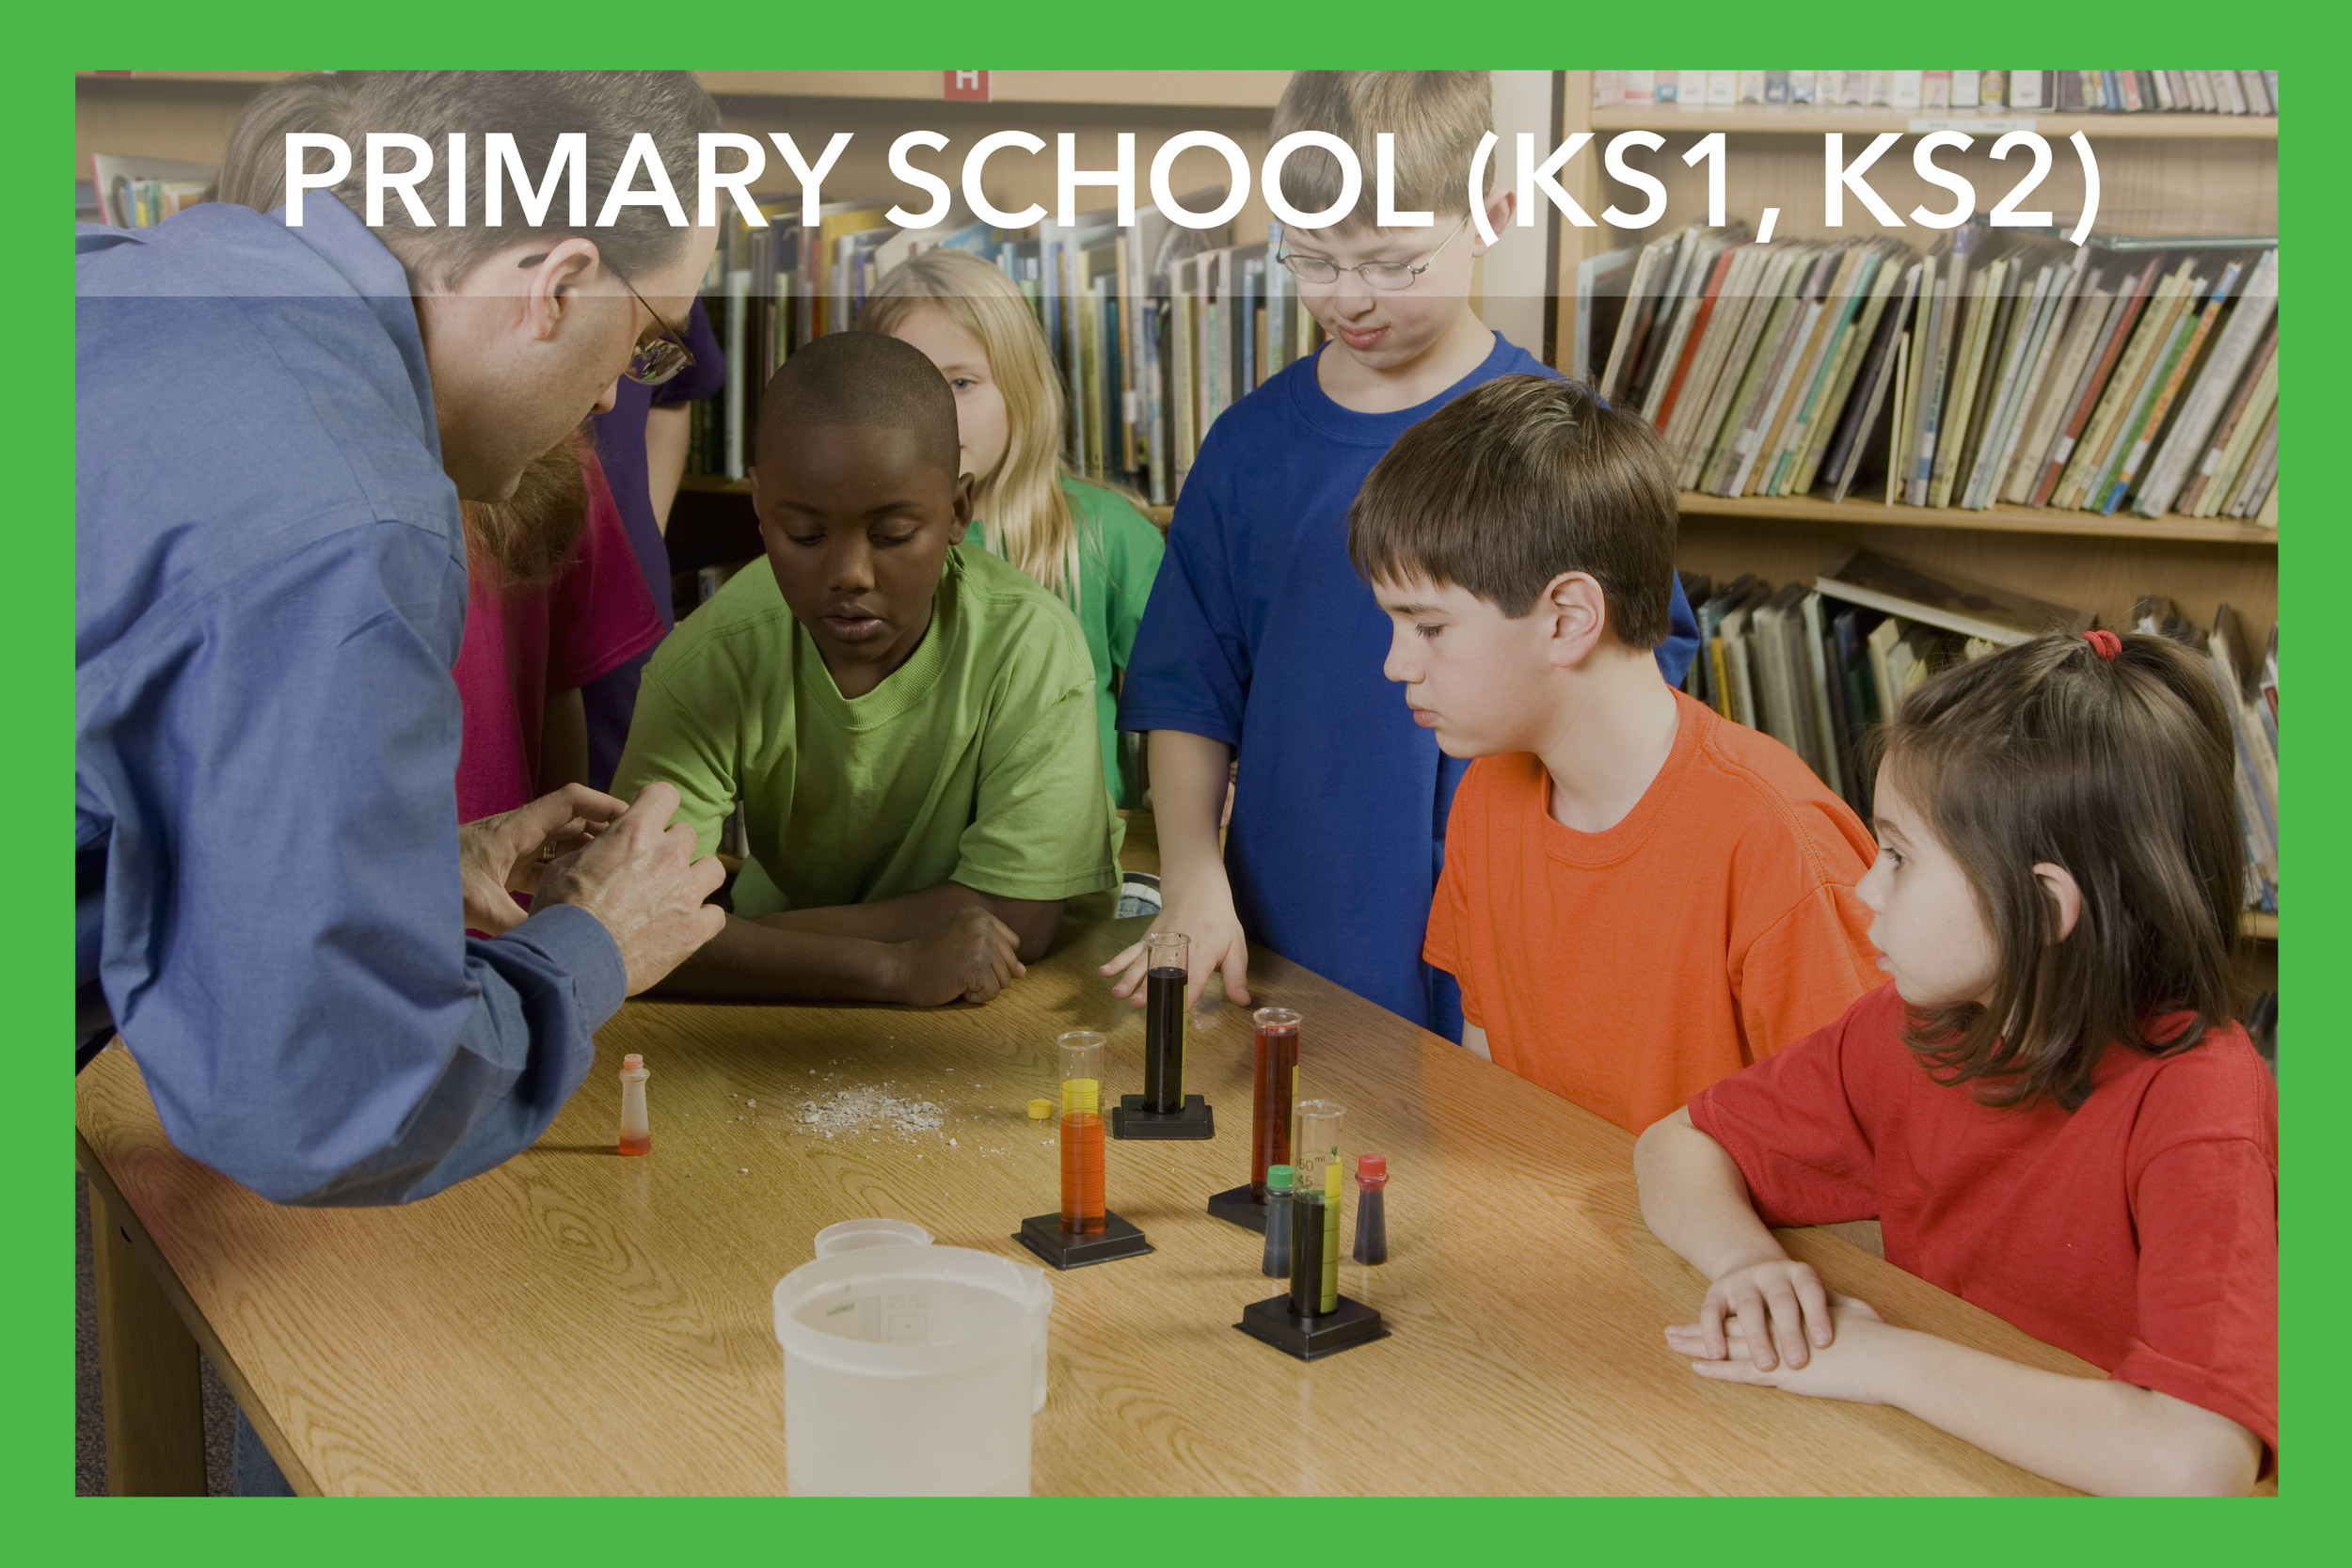 At primary school your child will first be formally taught science and their natural inquisitiveness about how the world works has the potential to spark a lifelong interest in the subject. At Numberprep we teach chemistry alongside the other sciences in line with the National Curriculum, and ensure sessions are engaging by allowing your child to explore materials and make observations for themselves.    Topics: Working scientifically, Everyday materials, Rocks, States of matter